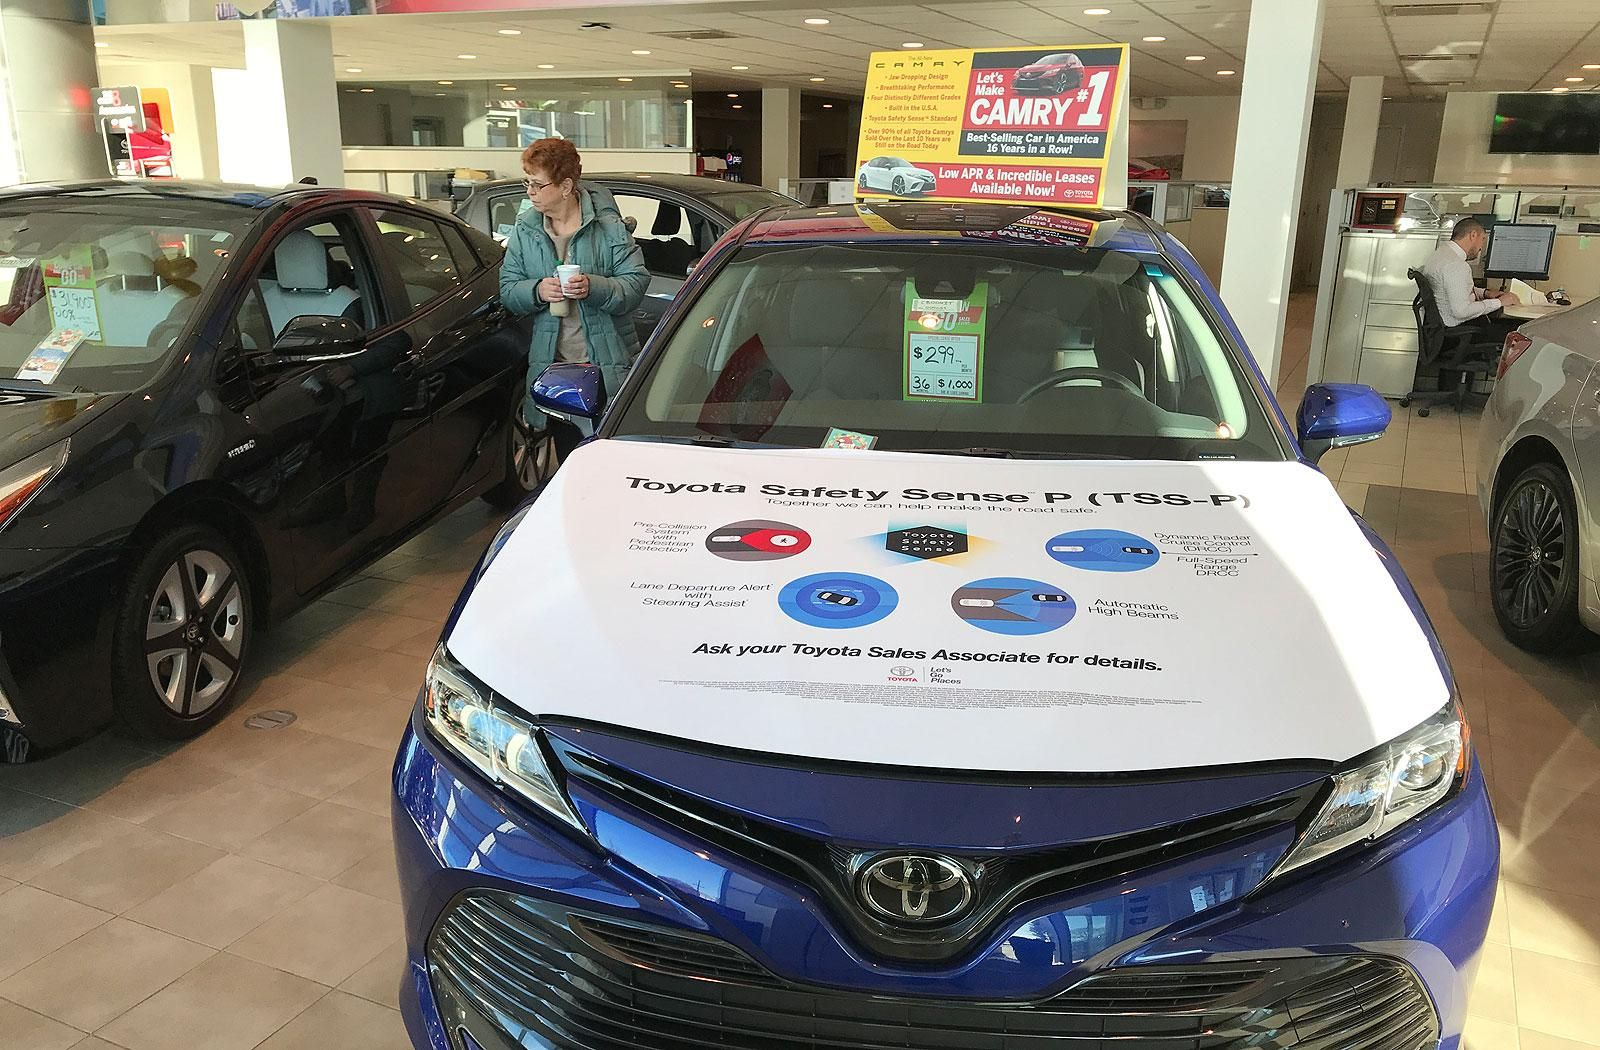 How Toyota Protected Camry S Crown Http Www Autonews Com Article 20180107 Retail01 180109850 Toyota Protected Ca Automotive Sales Toyota Automotive Solutions